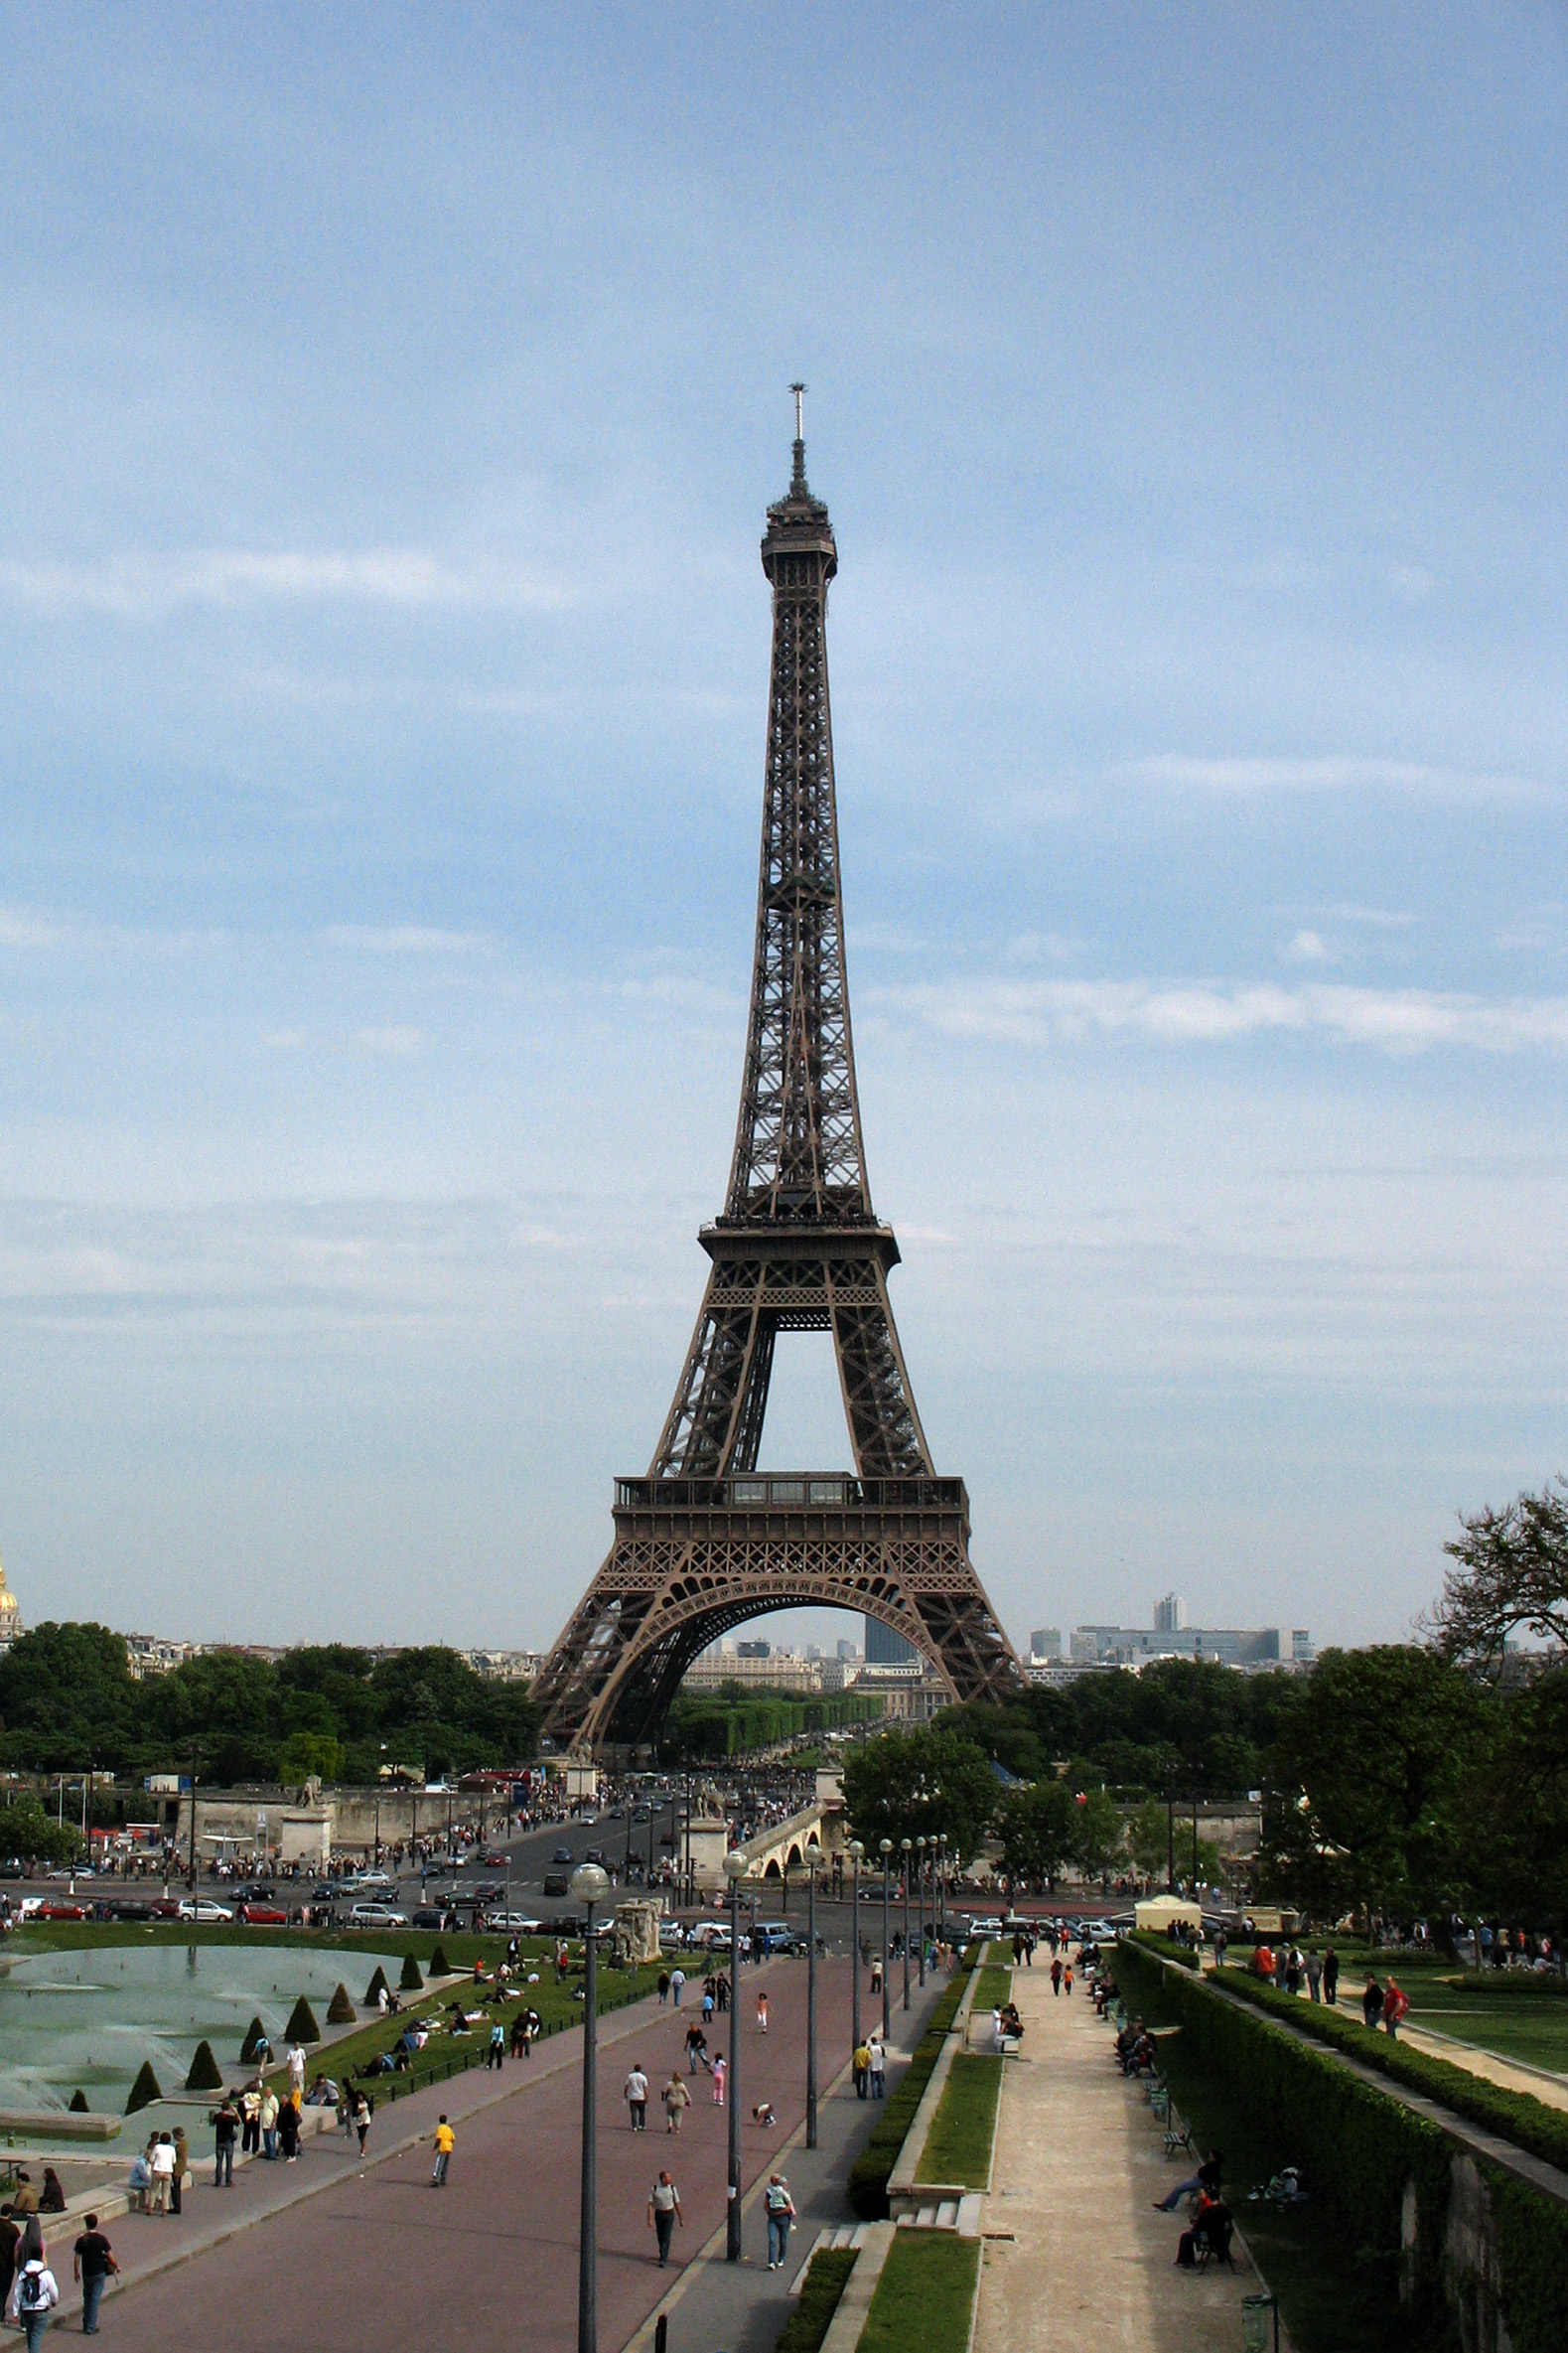 La tour eiffel sur freemages - Tour eiffel image ...